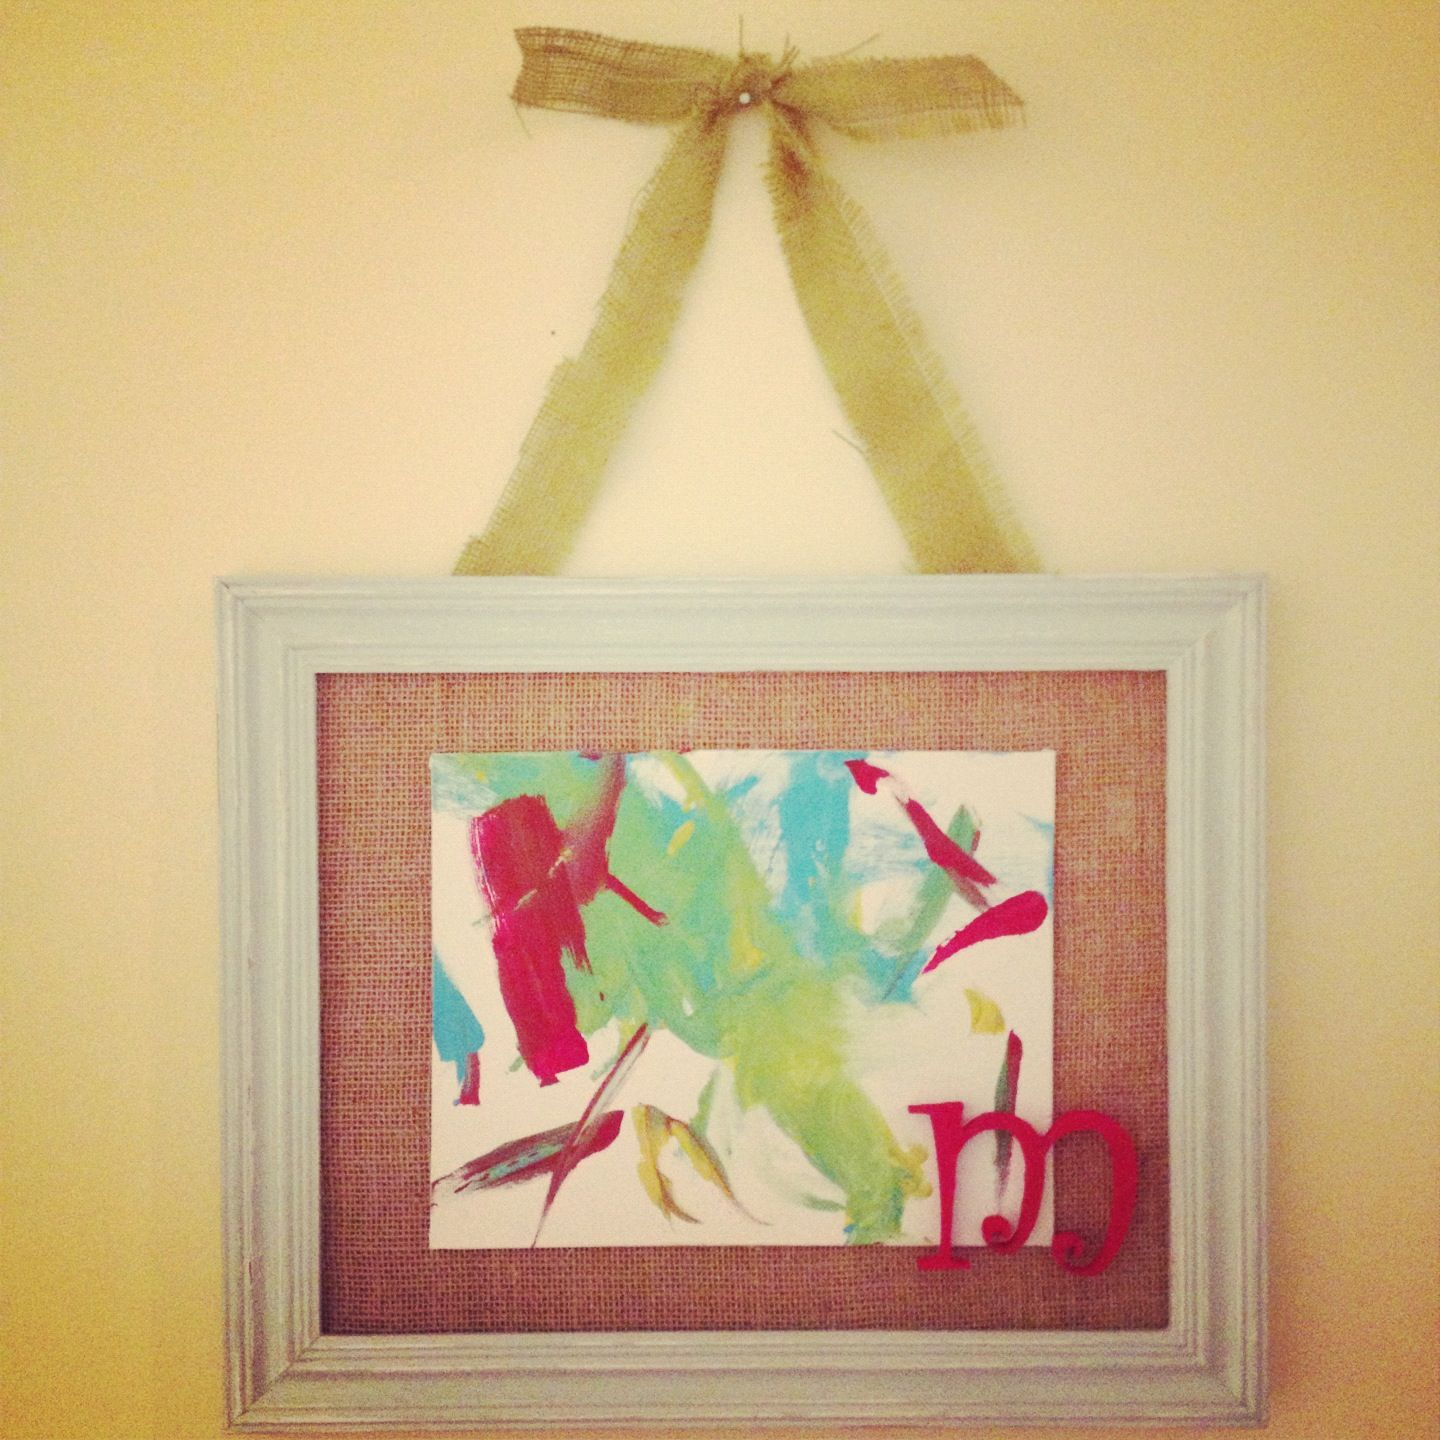 Molly's first artwork framed and hanging in the playroom